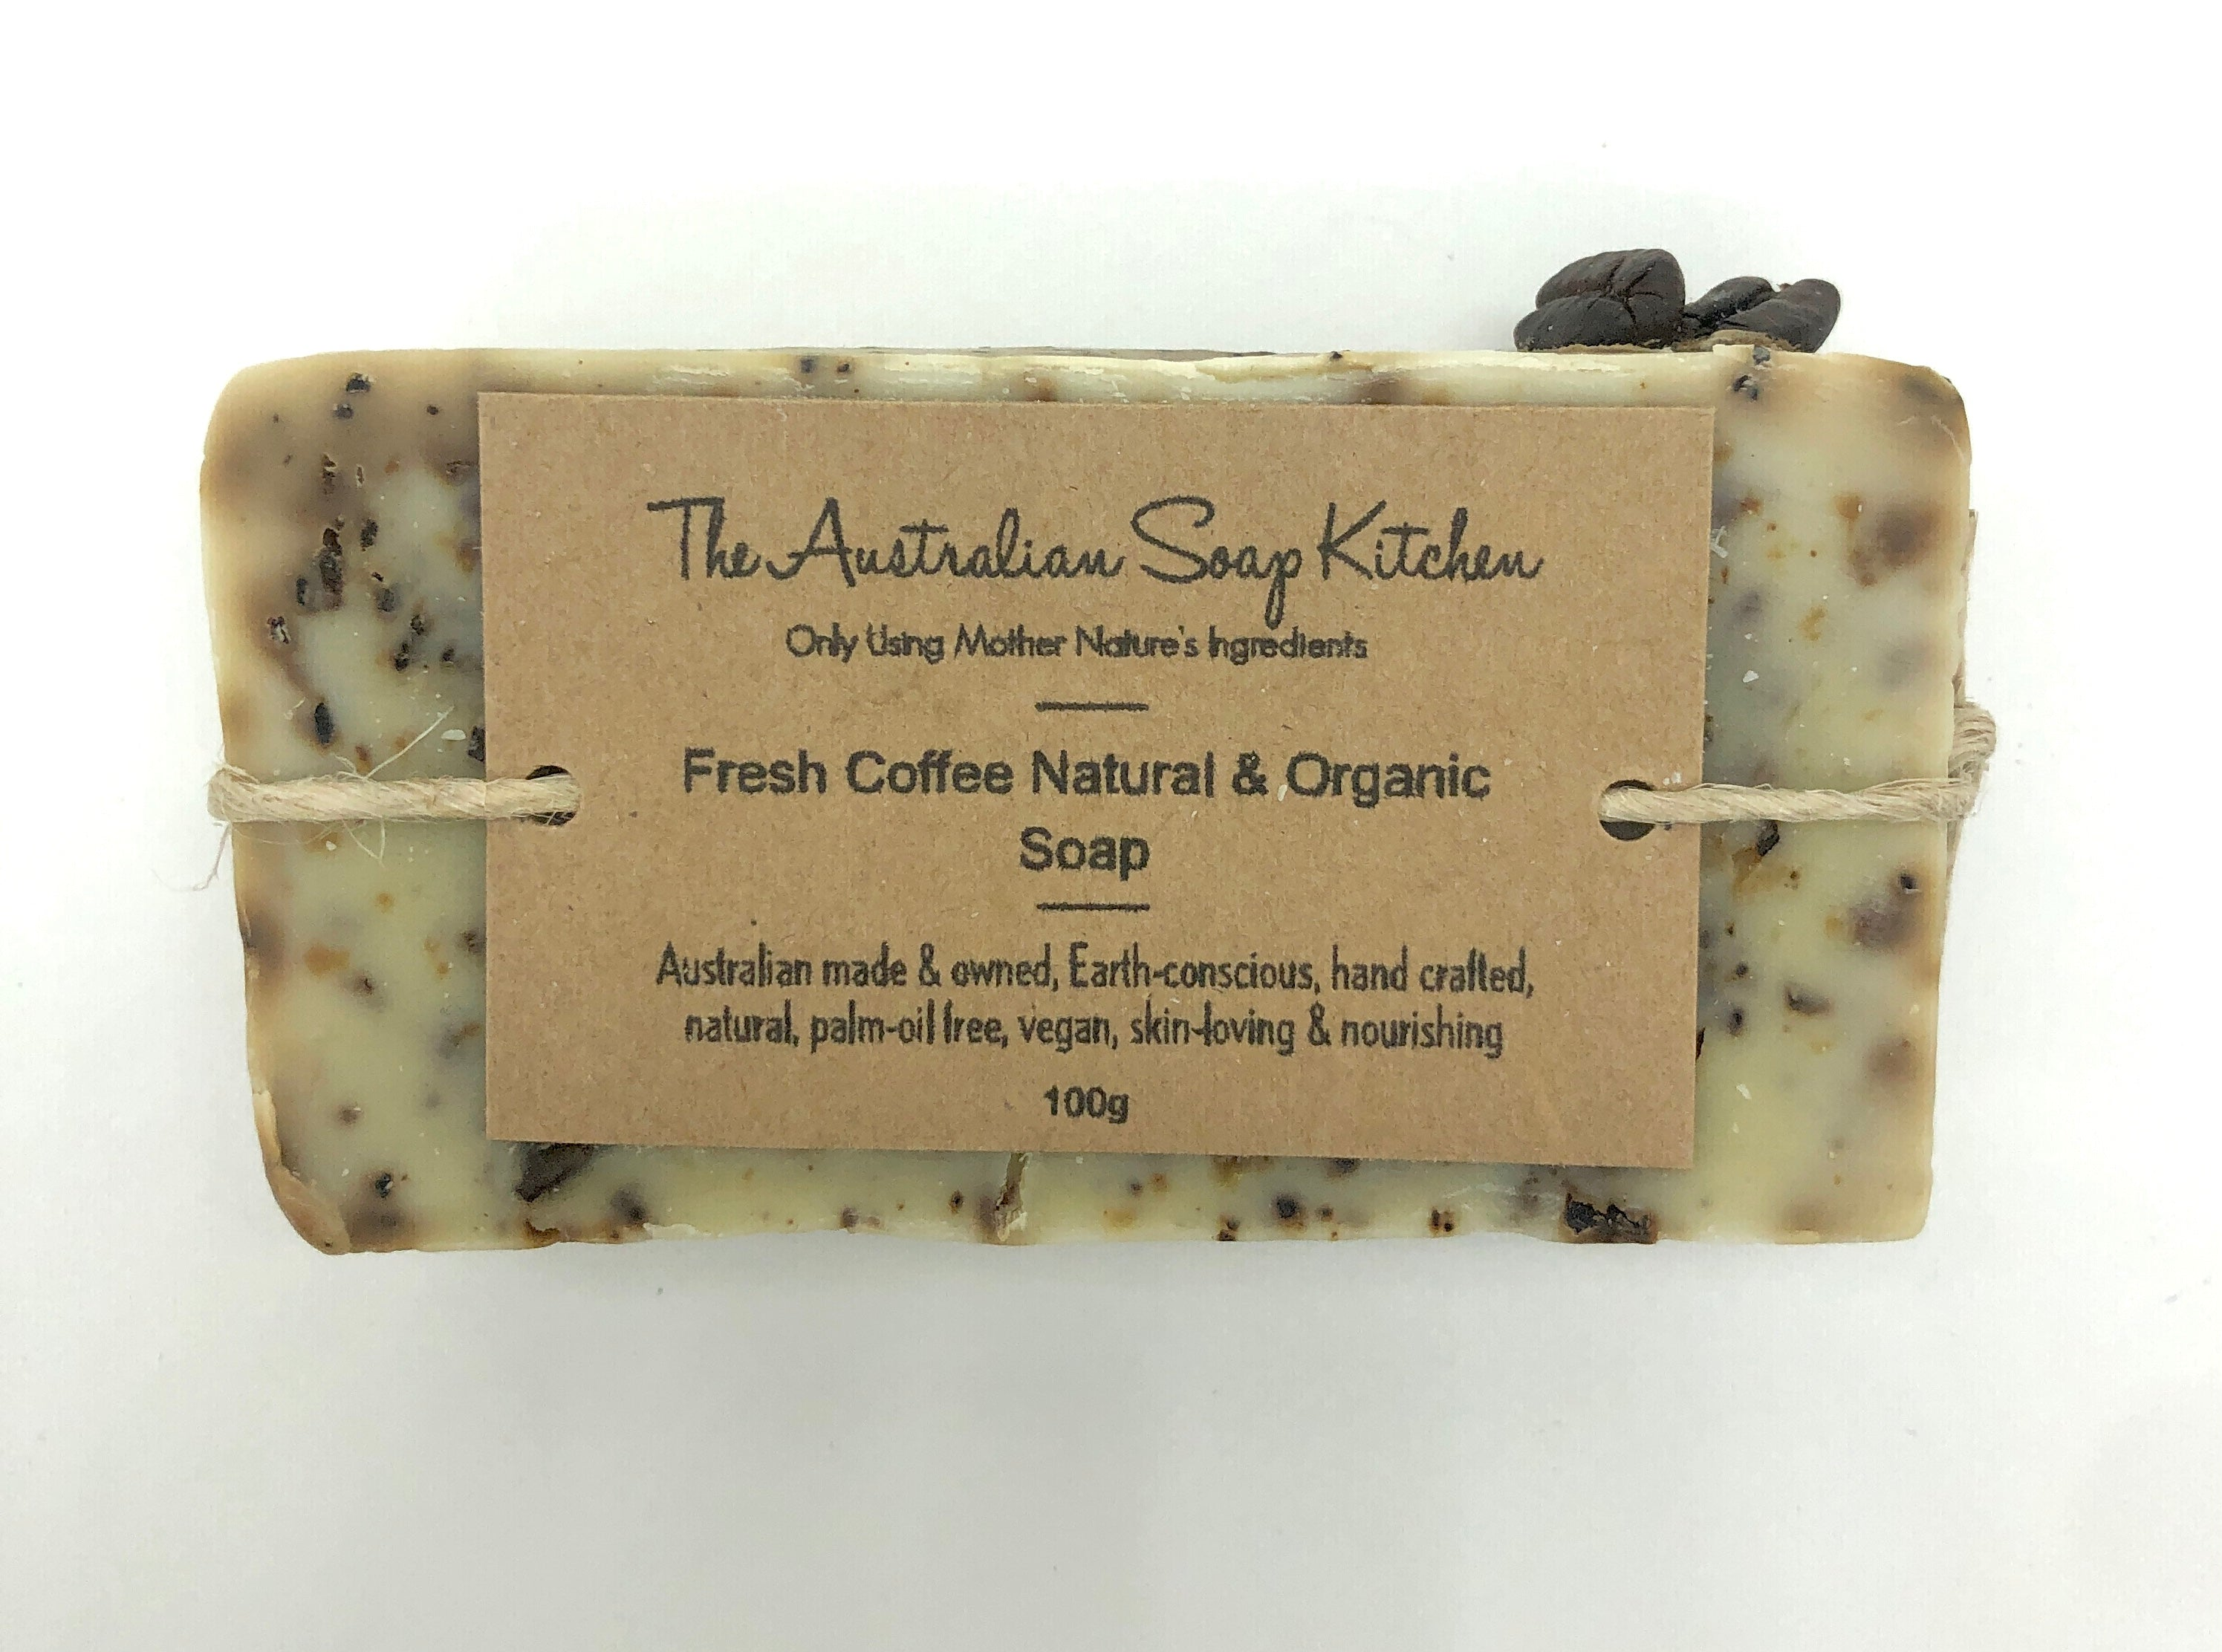 The Australian Soap Kitchen Coffee Natural & Organic Soap